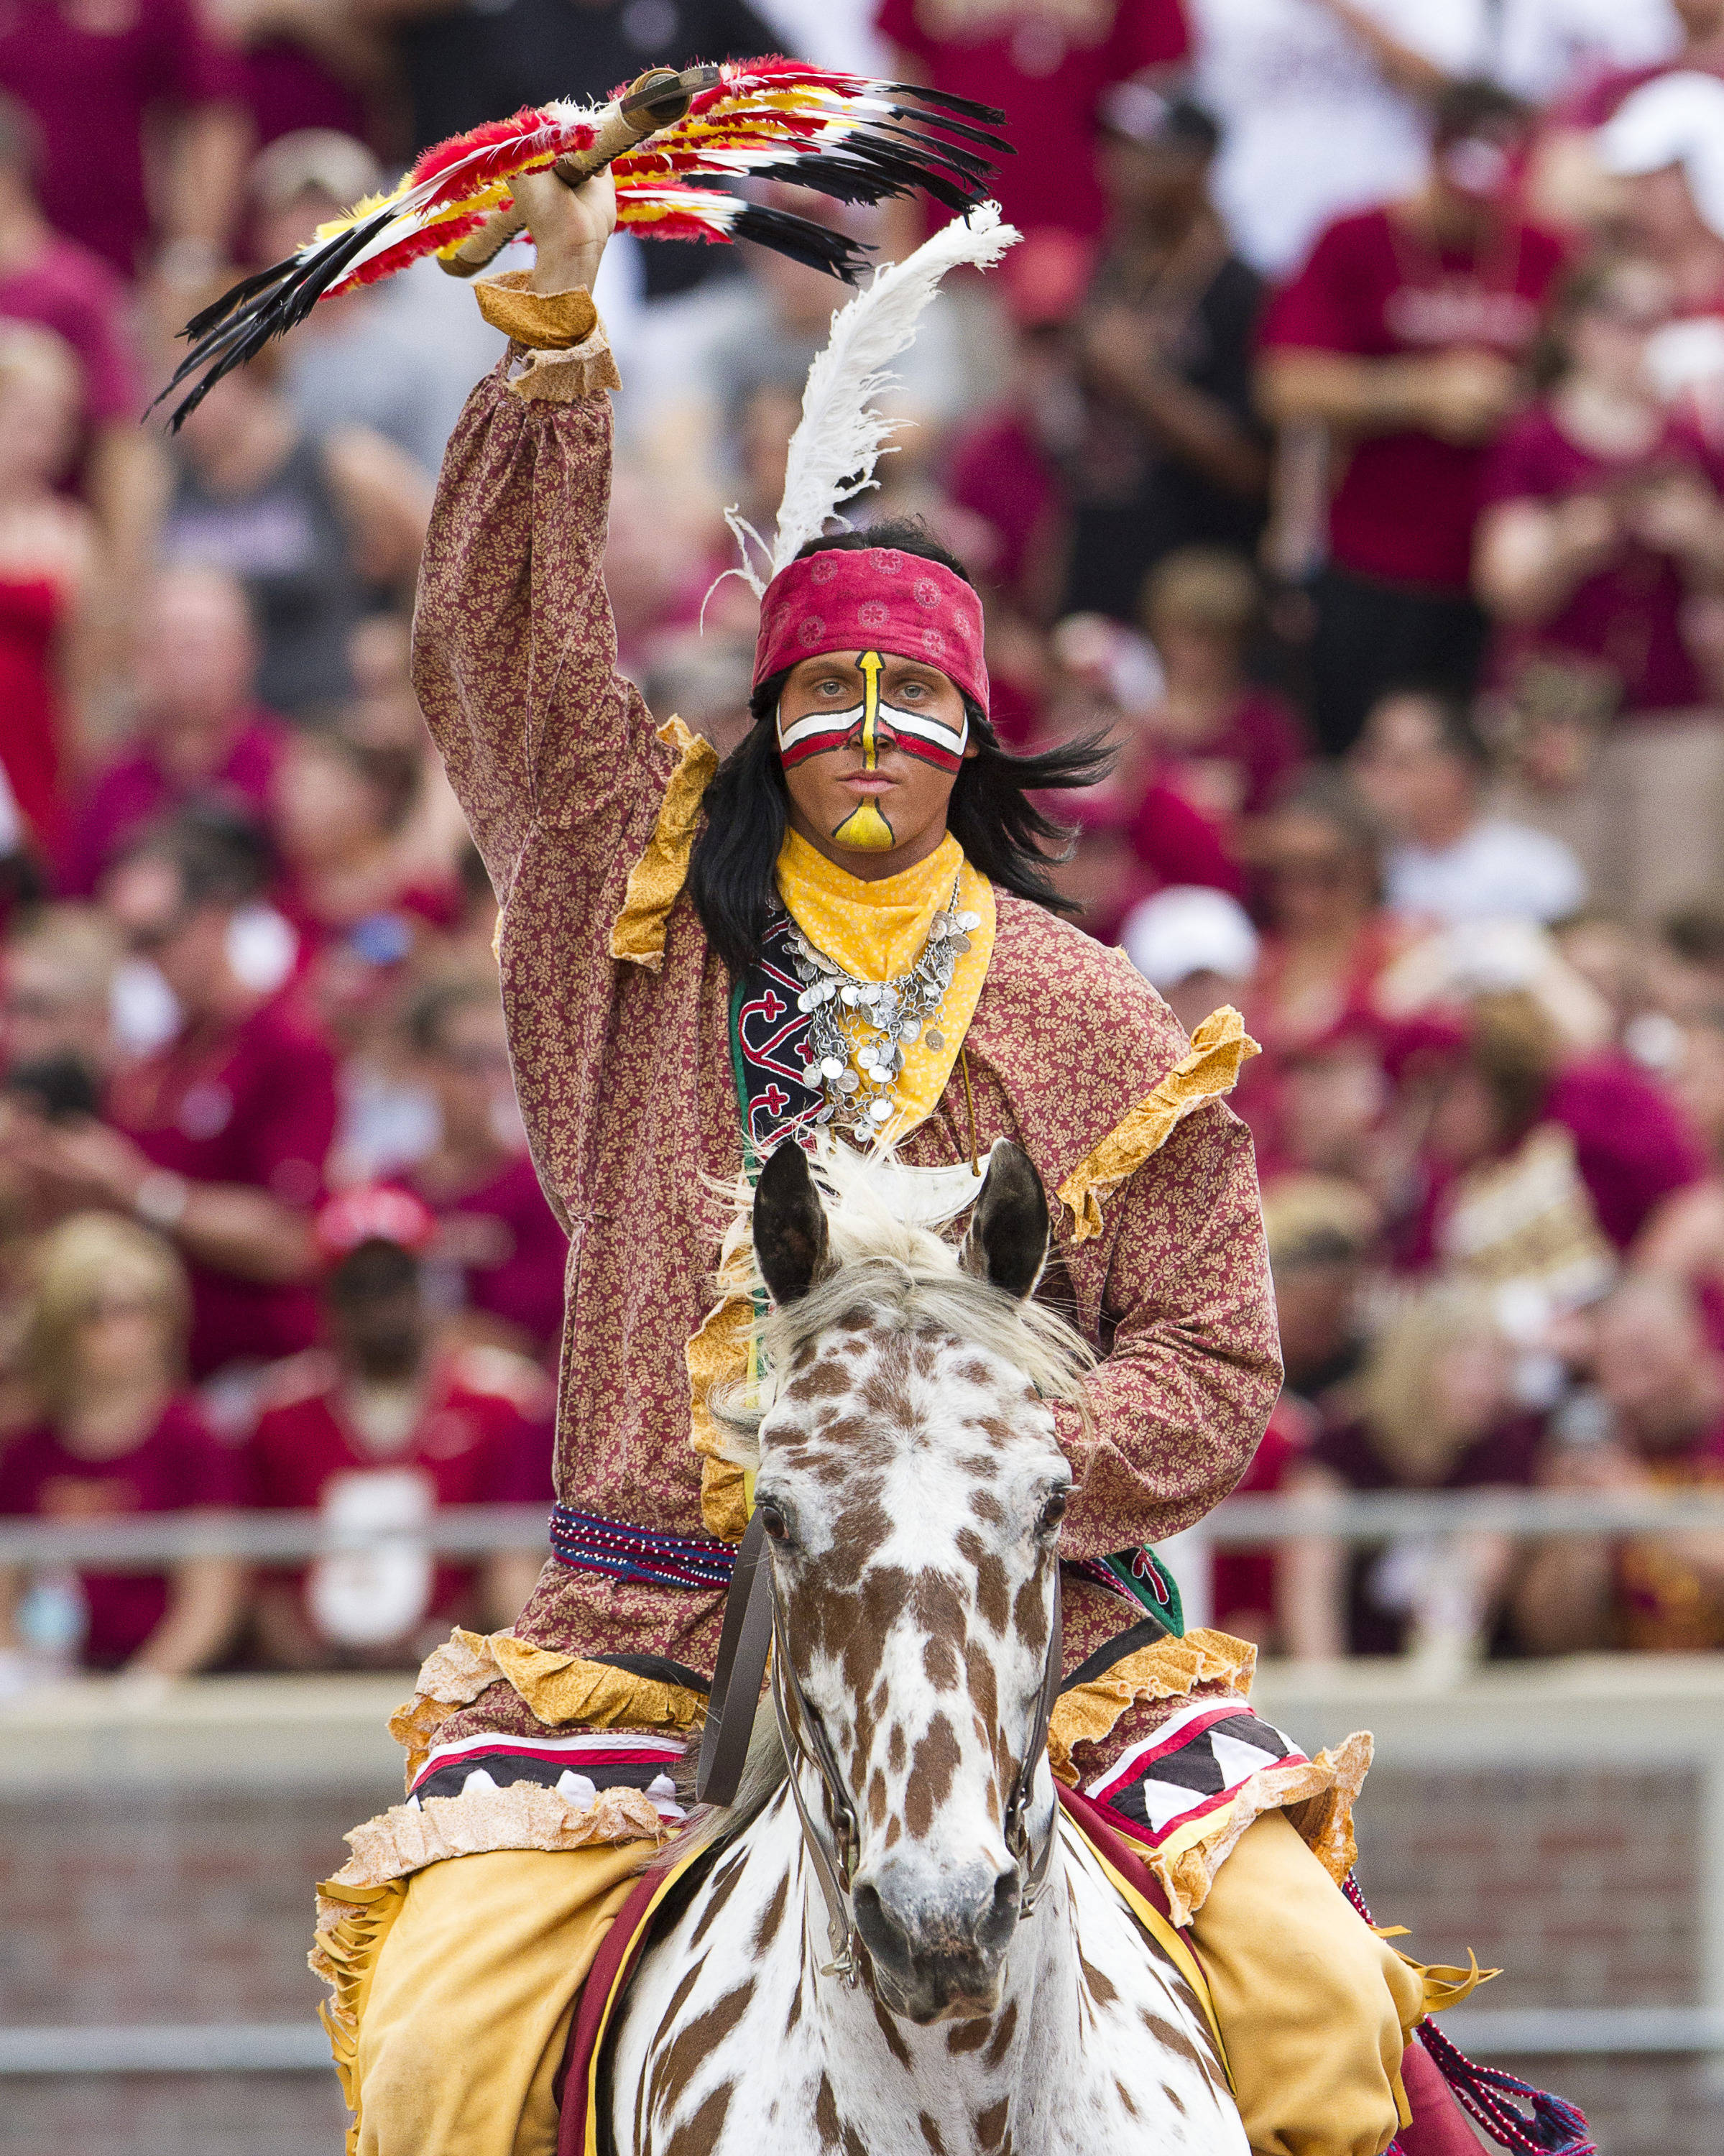 Osceola and Renegade celebrate during FSU's 62-7 win over Nevada on Saturday, Sept 14, 2013 in Tallahassee, Fla.